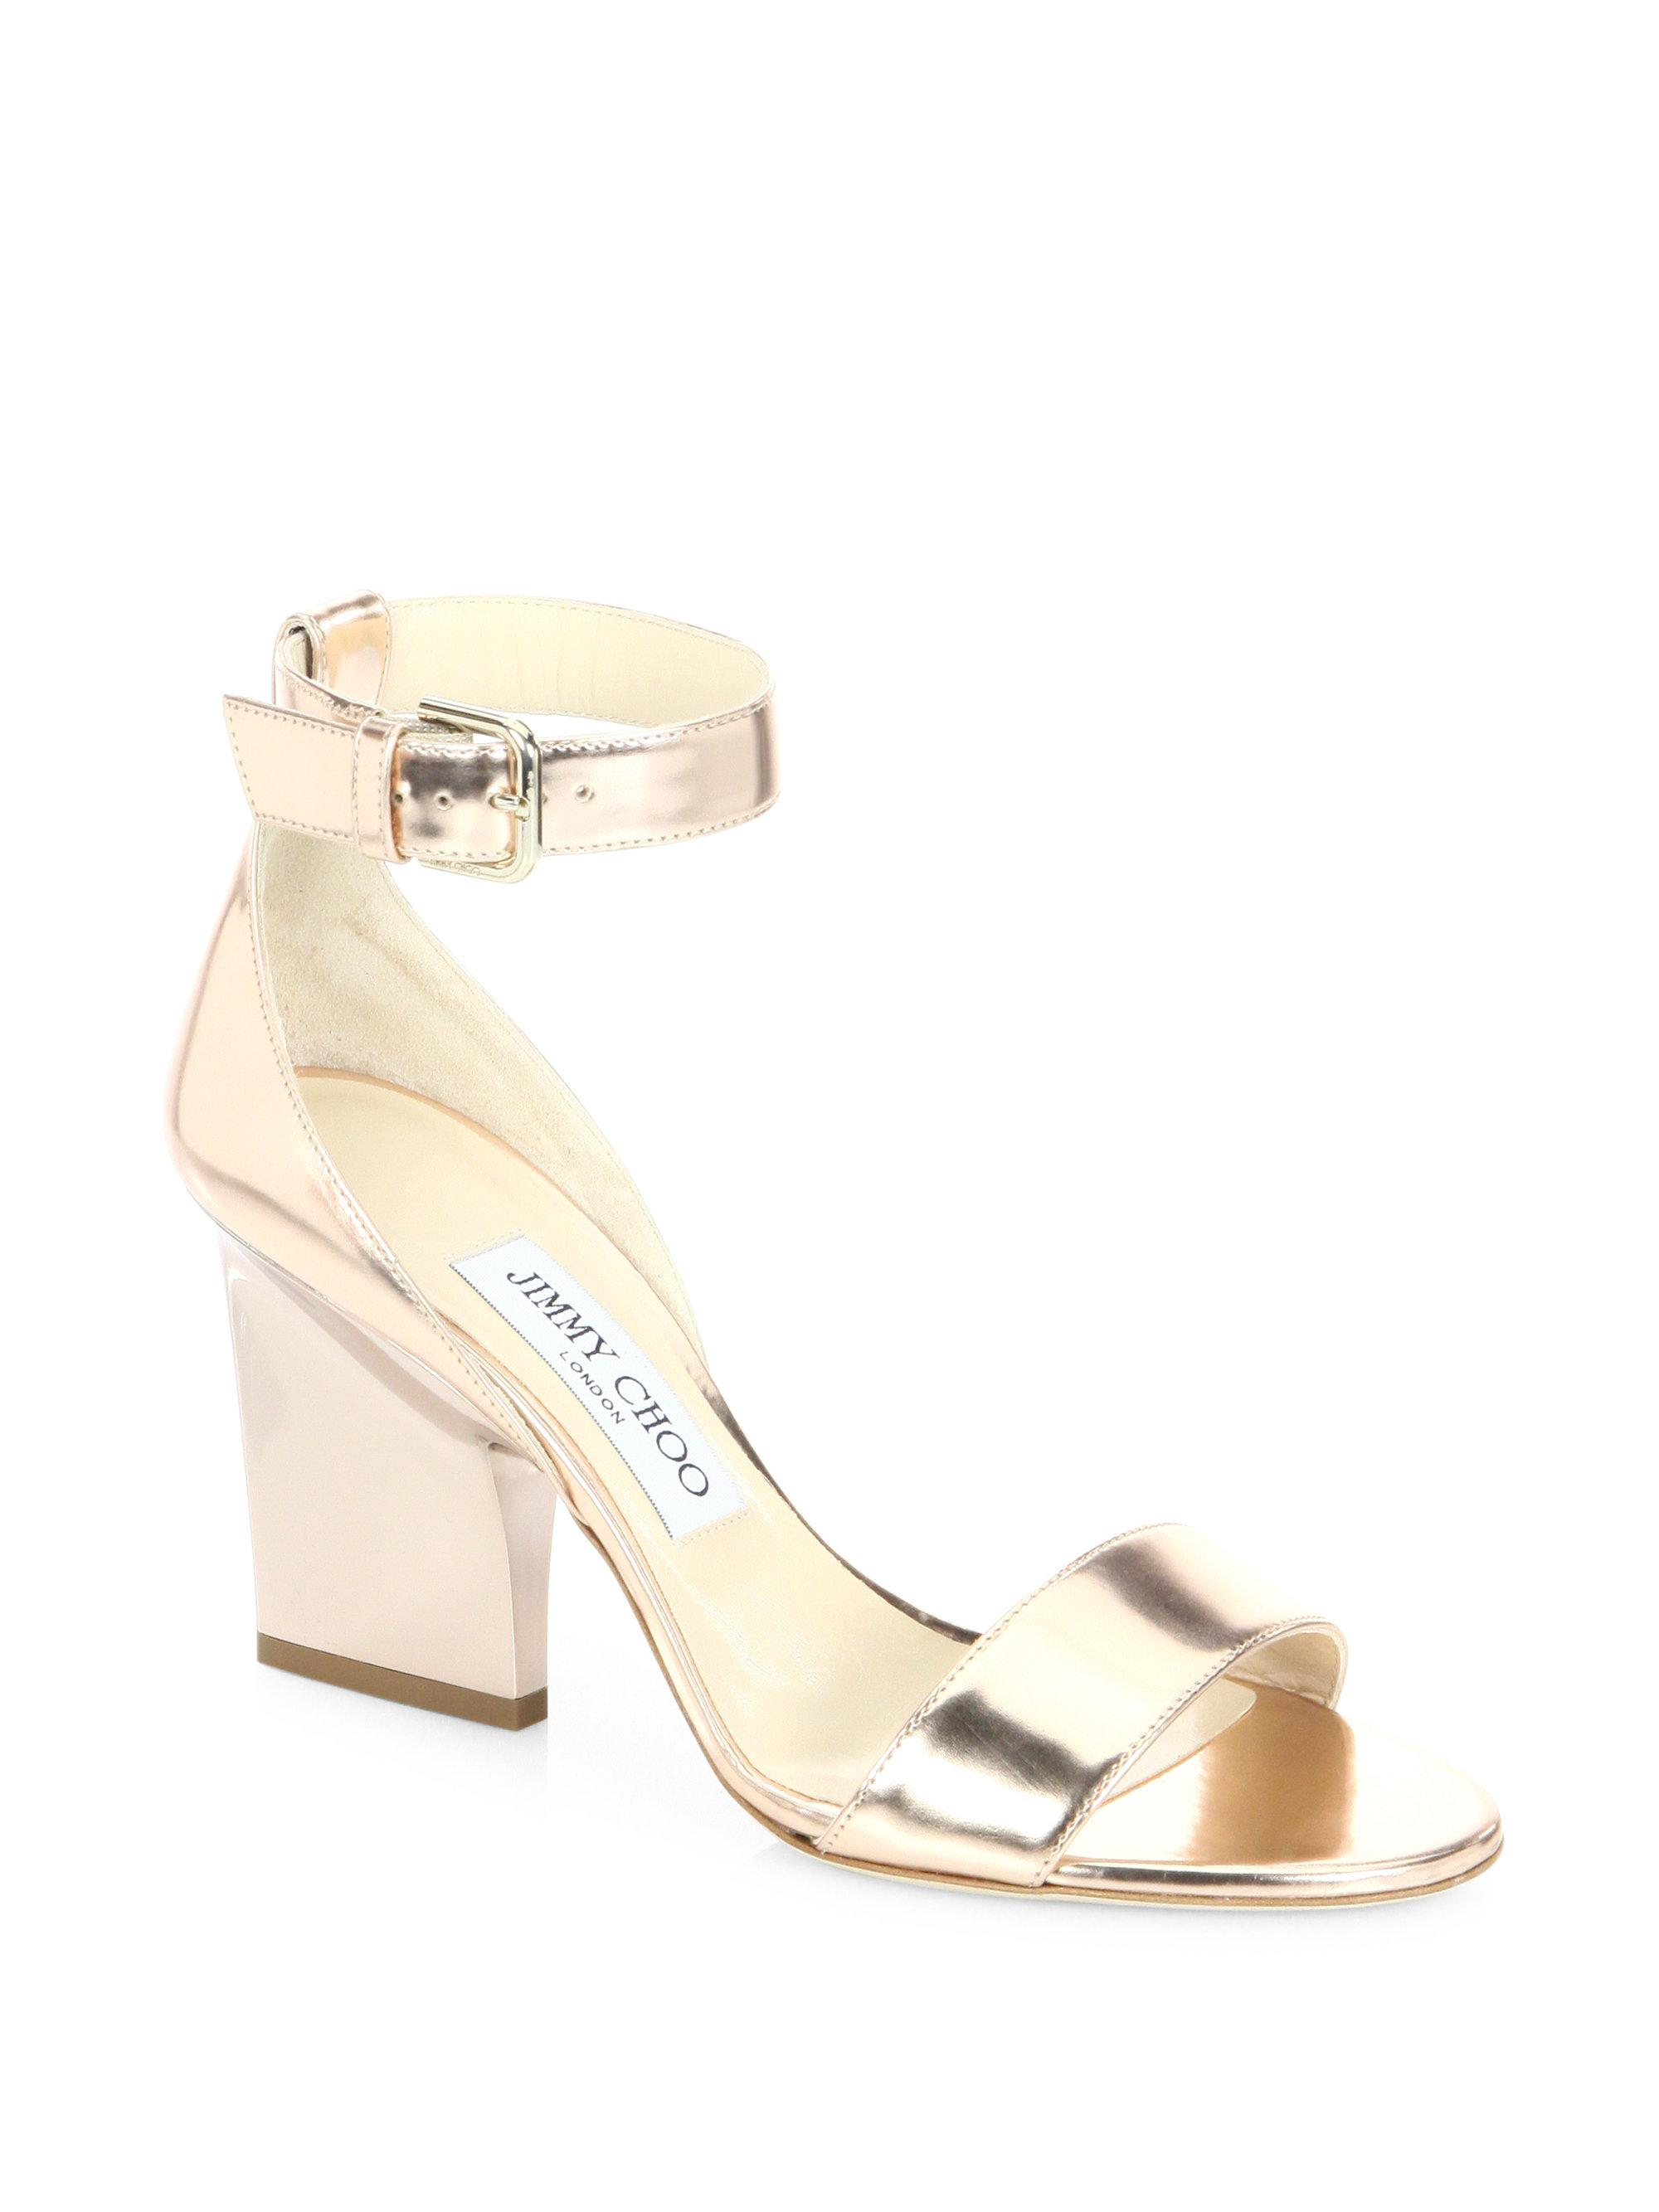 c48a98cdcde Lyst - Jimmy Choo Edina 85 Metallic Leather Ankle-strap Sandals in ...